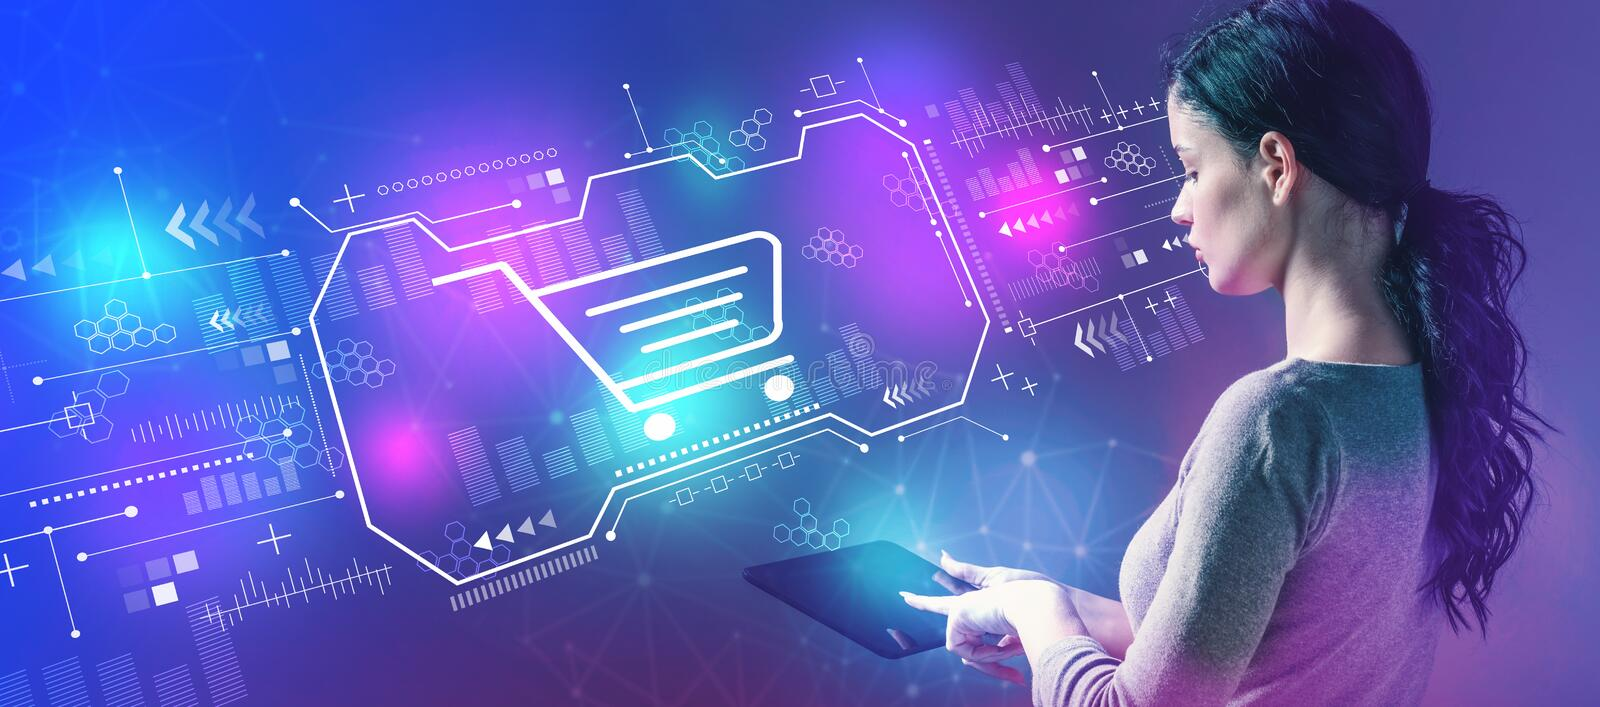 Online shopping theme with woman using a tablet royalty free stock photo